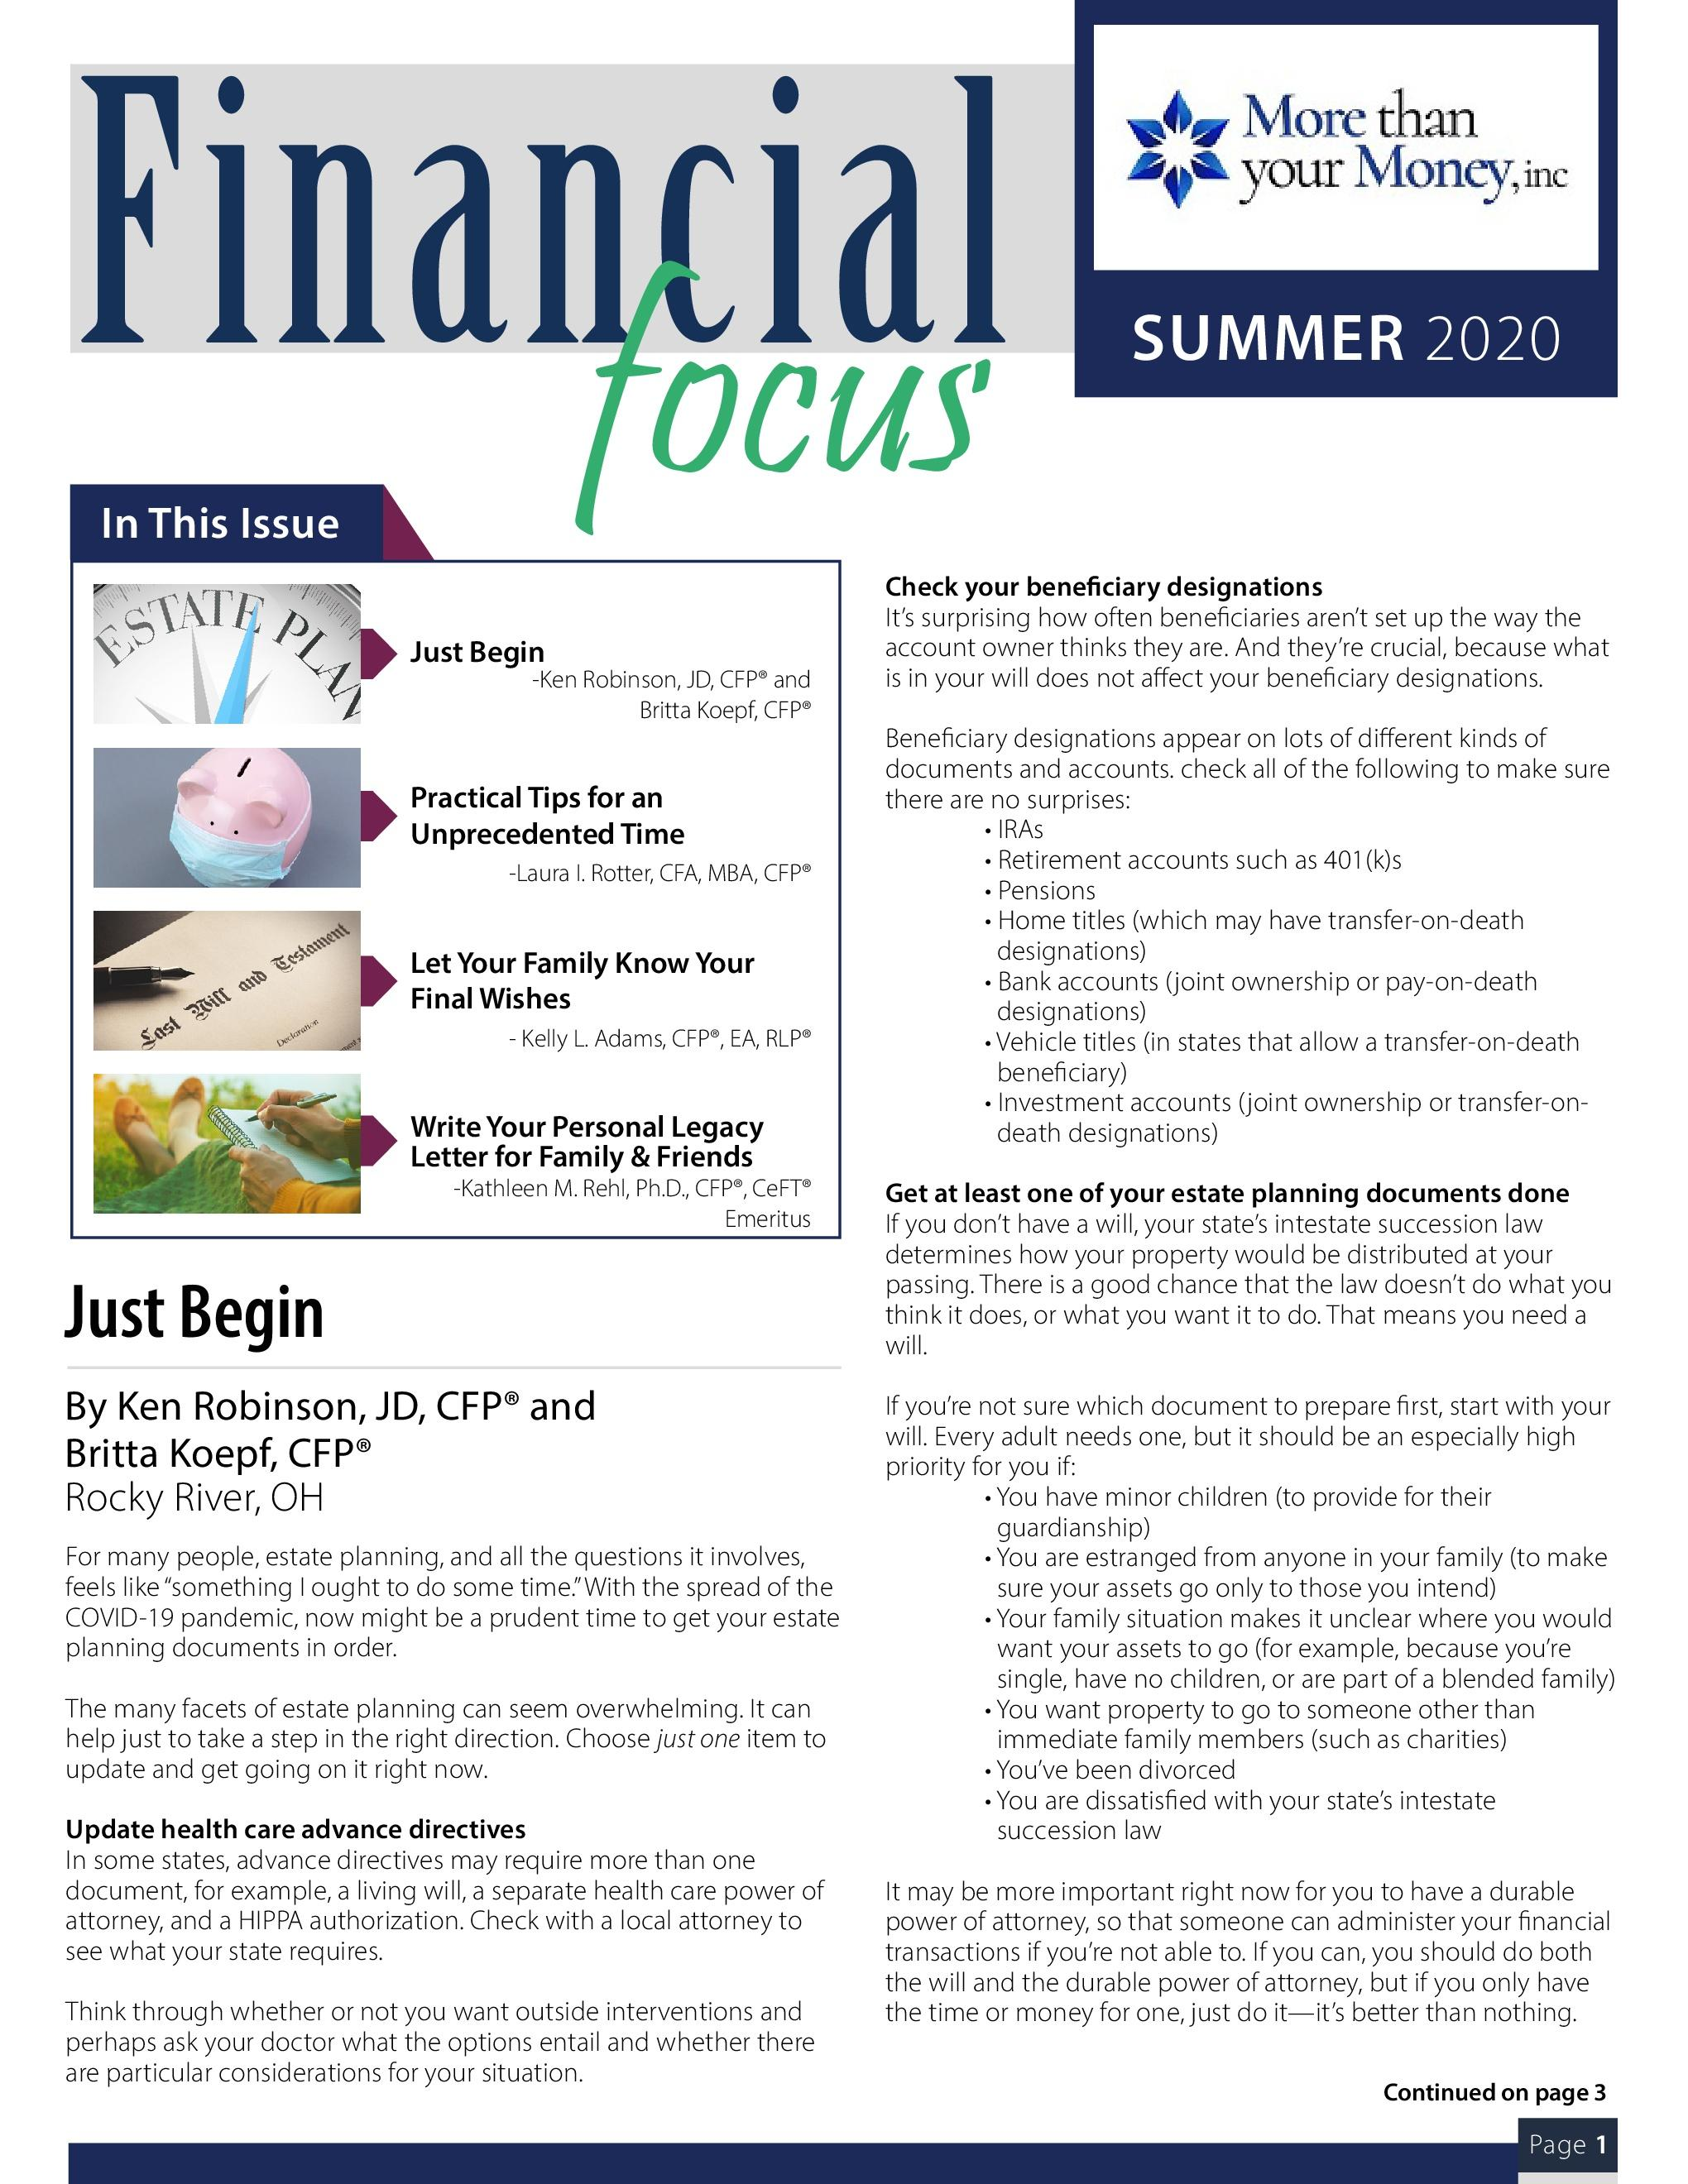 Financial Focus Summer 2020 Thumbnail